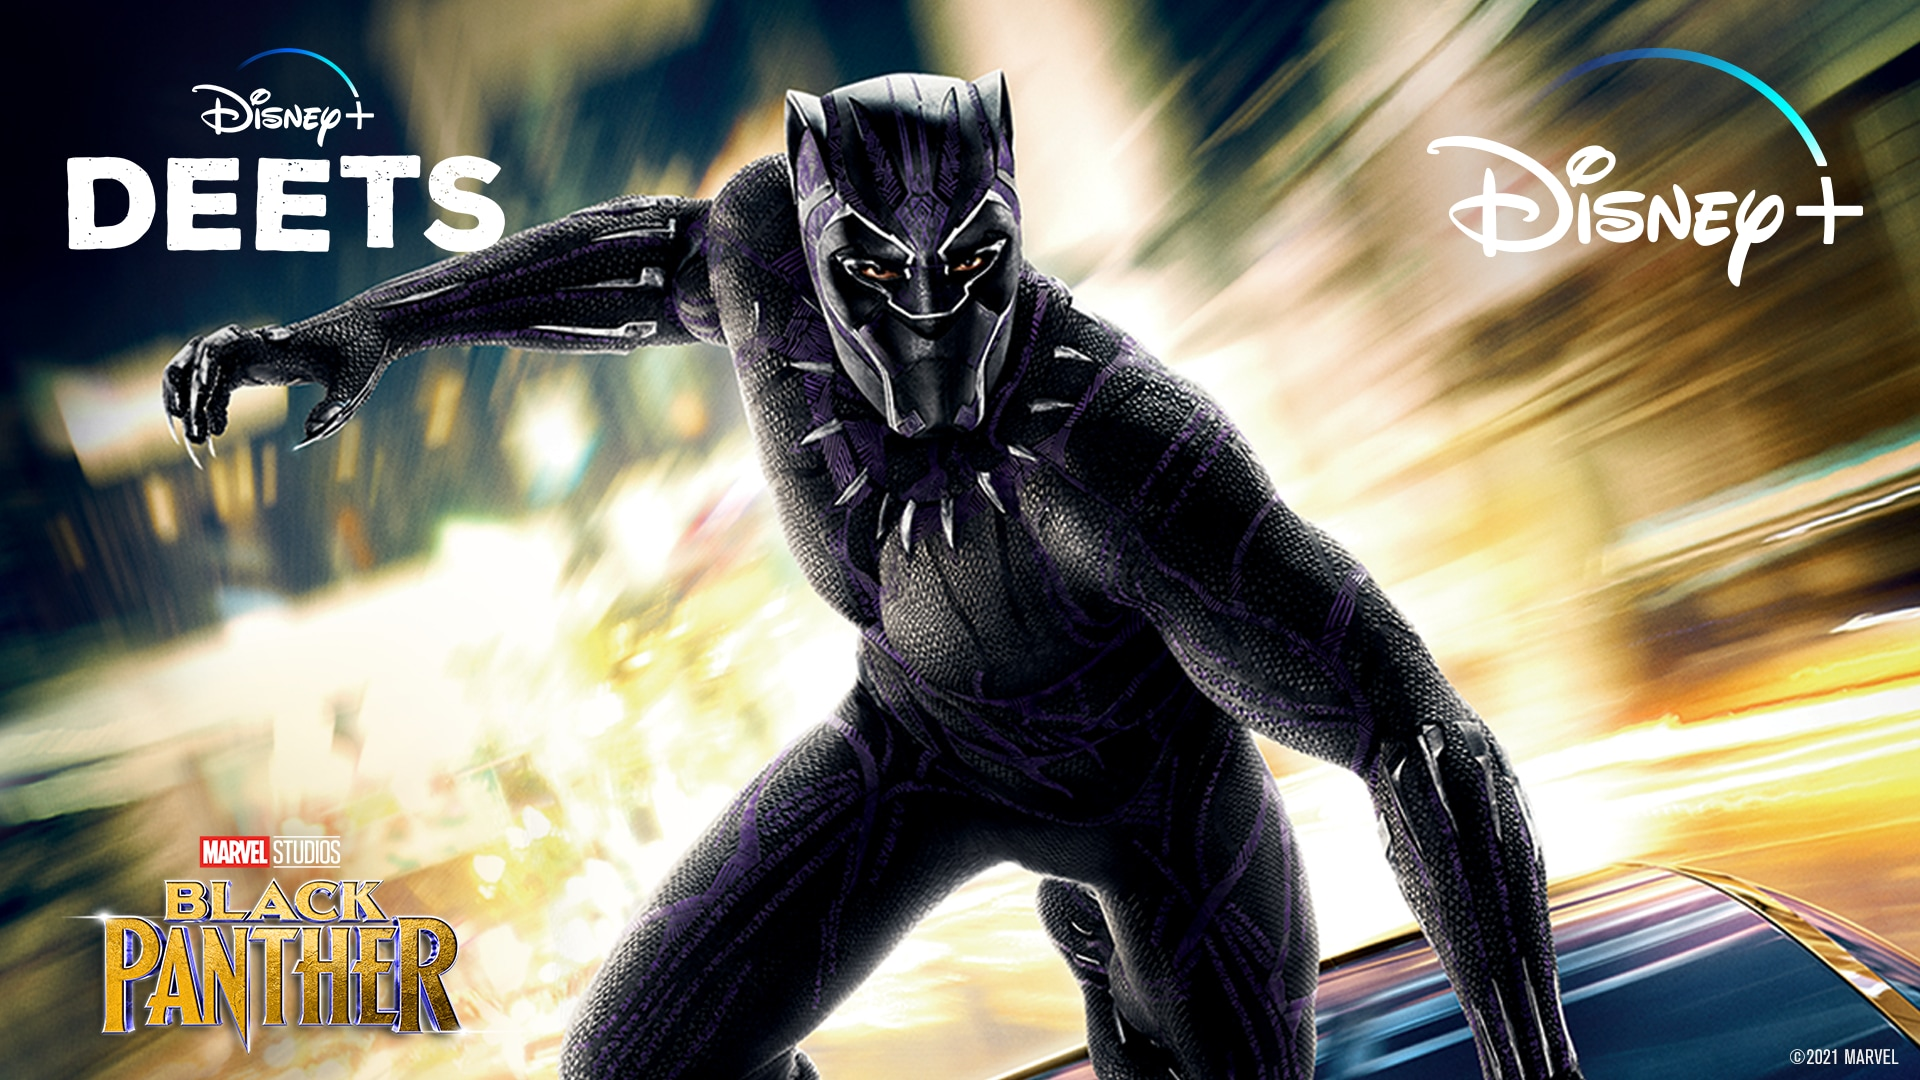 Marvel Studios' Black Panther | All the Facts | Disney+ Deets